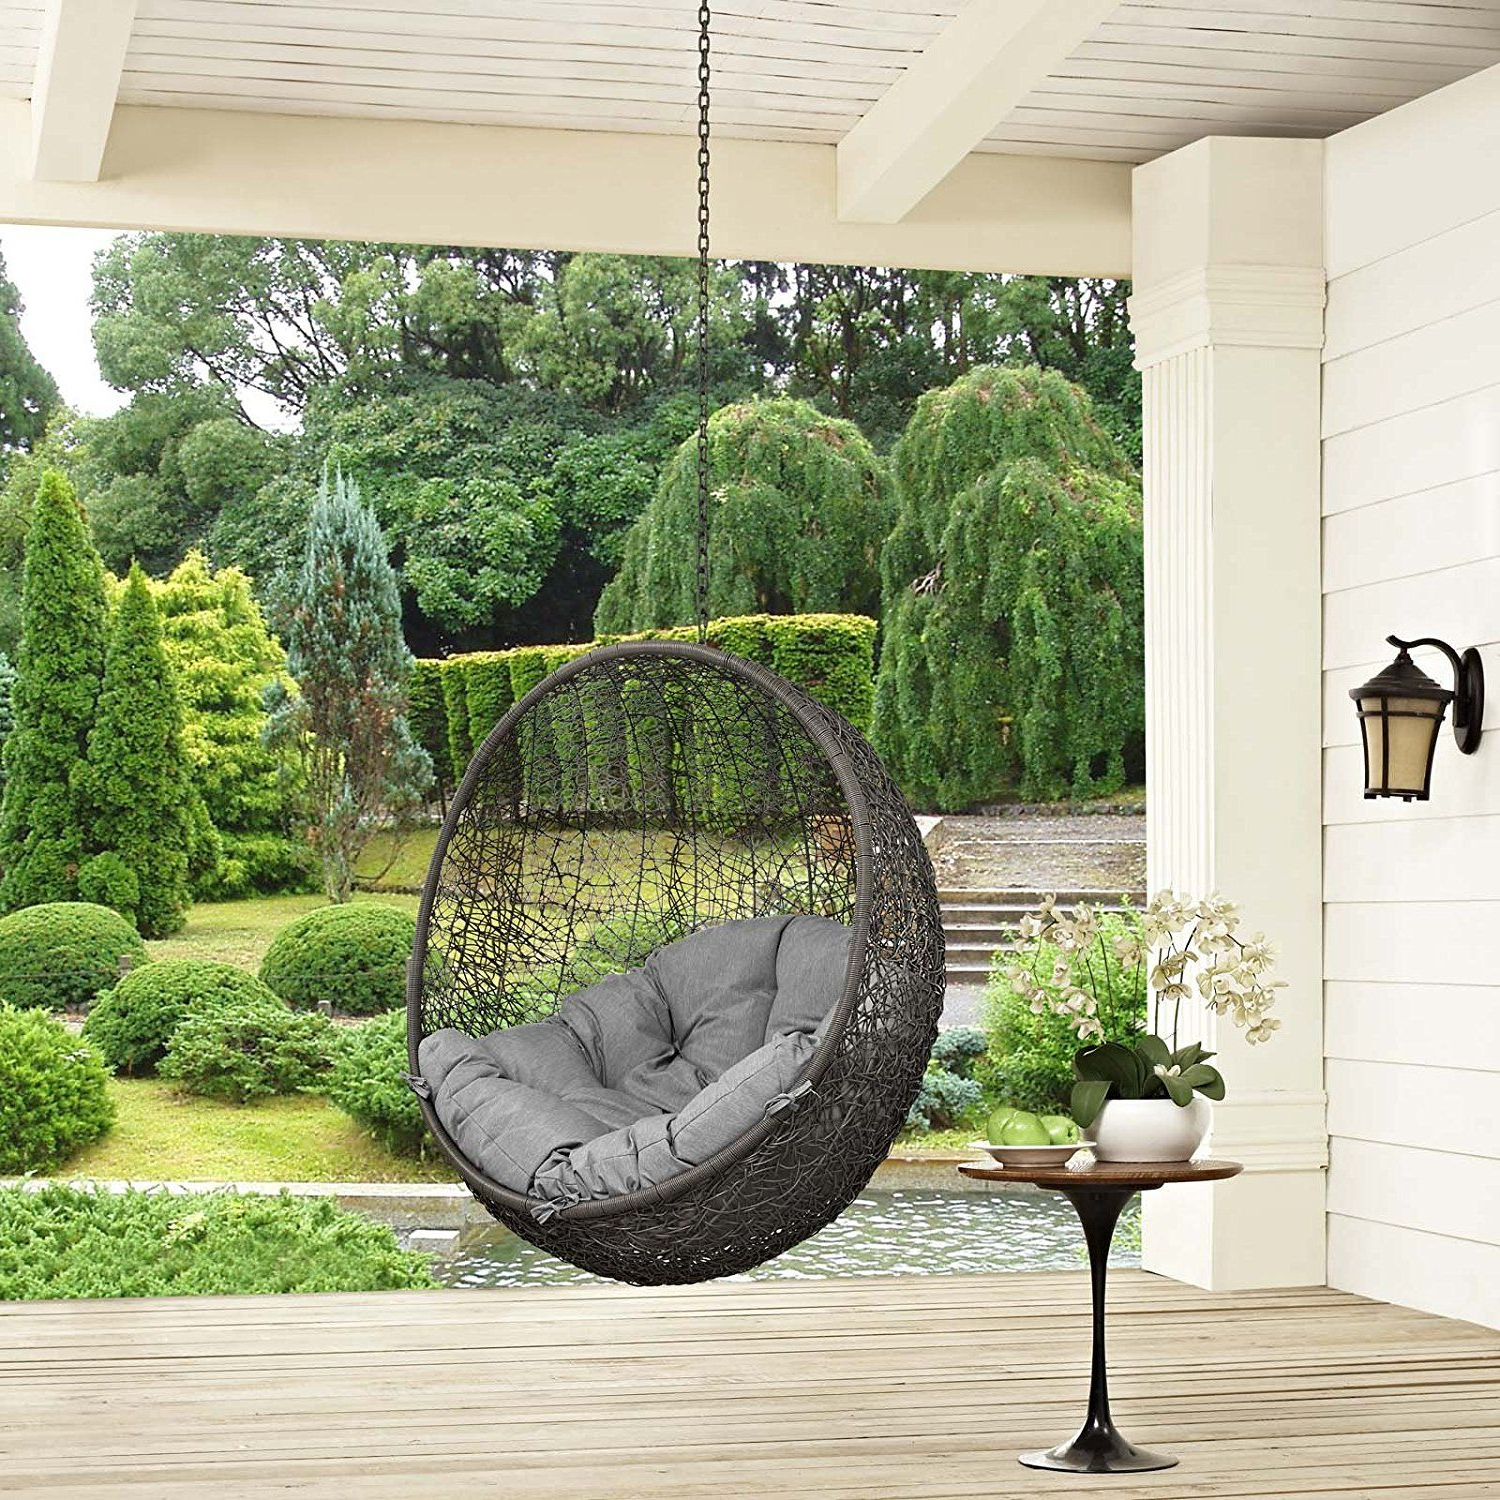 Lamp Outdoor Porch Swings Intended For Well Known Hang It On And Swing All Day Long (View 5 of 25)